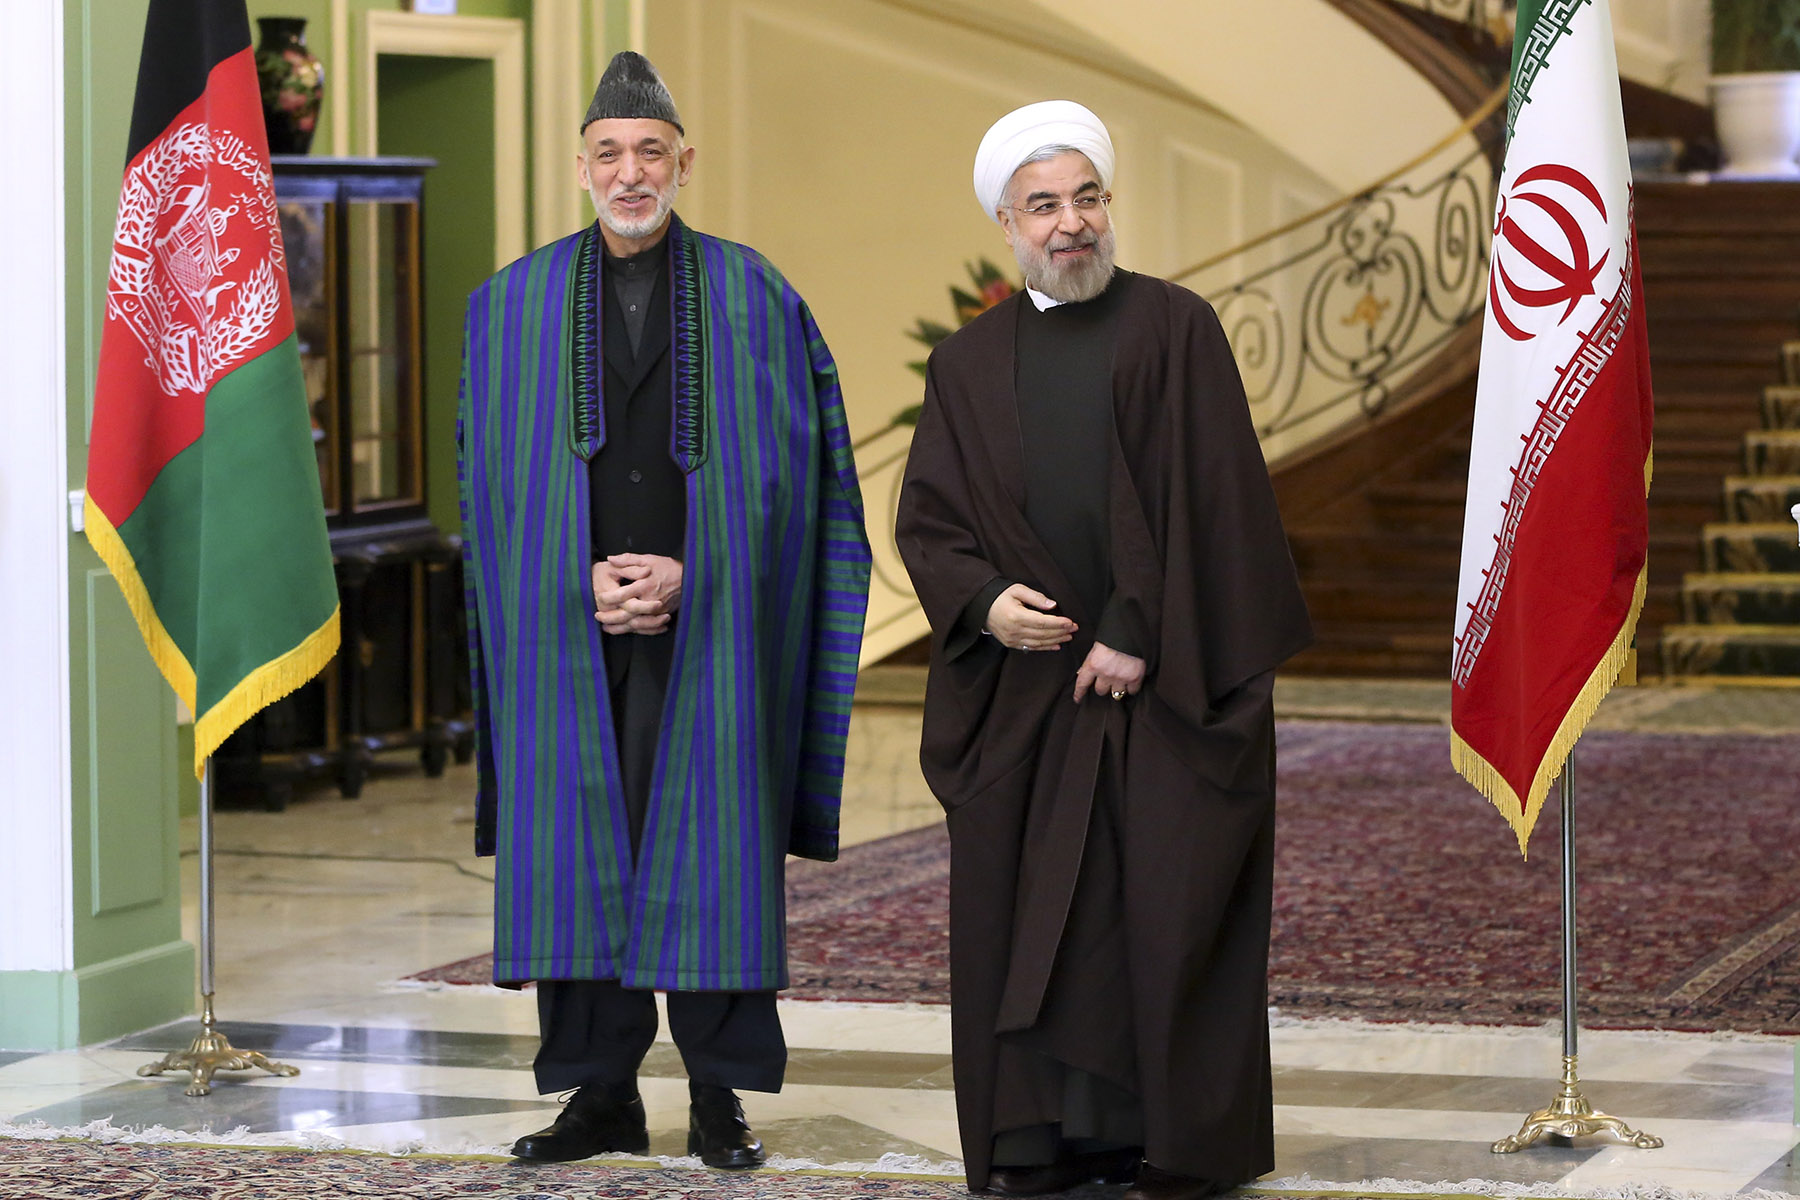 Iran's President Hassan Rouhani, right, stands with Afghan President Hamid Karzai, Sunday, Dec. 8, 2013. On Karzai's watch, the Afghan economy has grown rapidly, at an average rate of 9.2% from 2003 to 2012. But only 27% of Afghans have access to safe drinking water, and 5% to adequate sanitation.